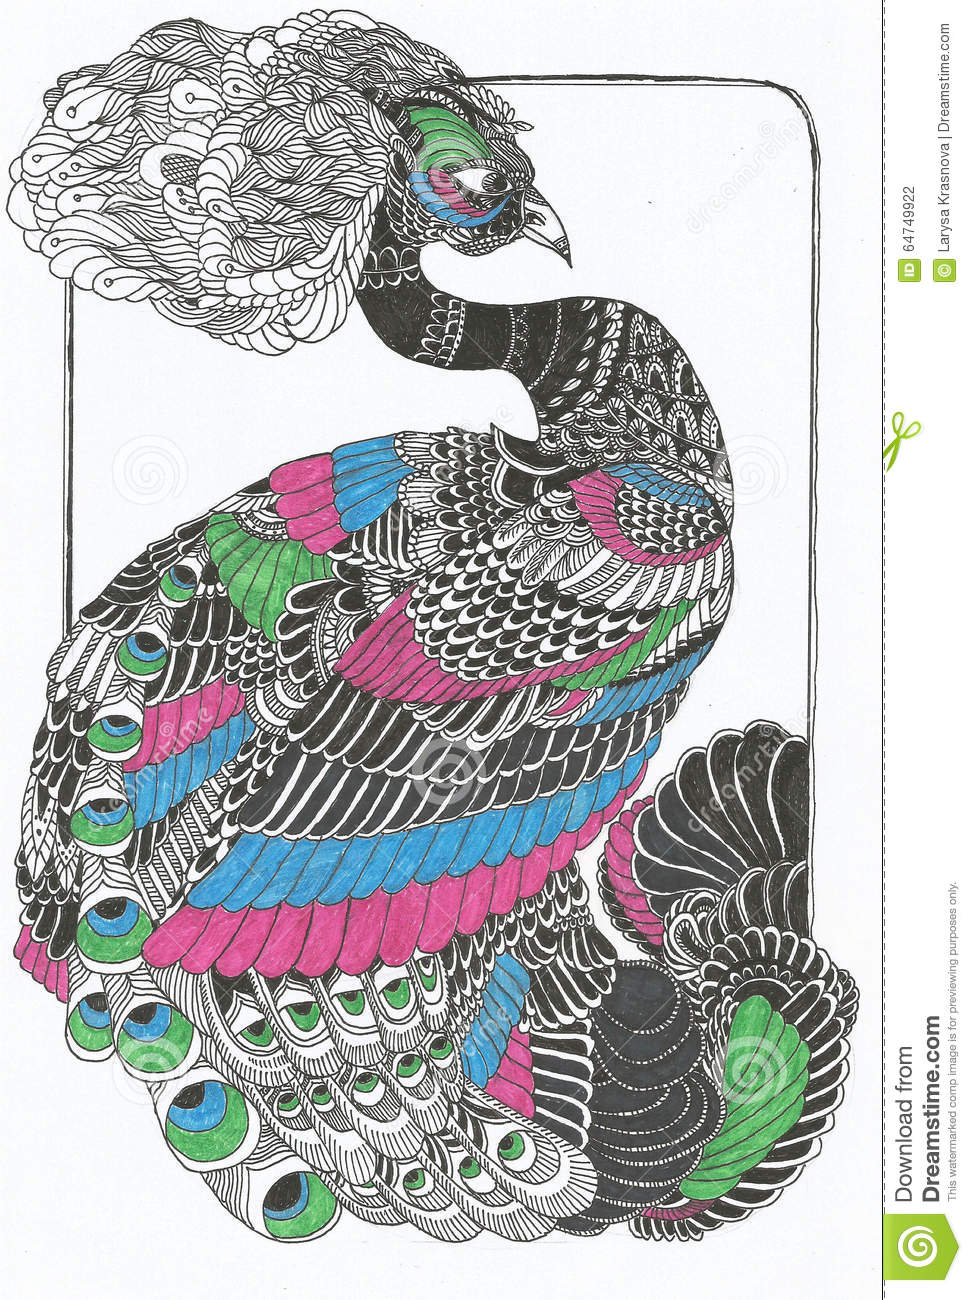 Line Drawing Of Peacock : Original peacock line art drawing stock illustration